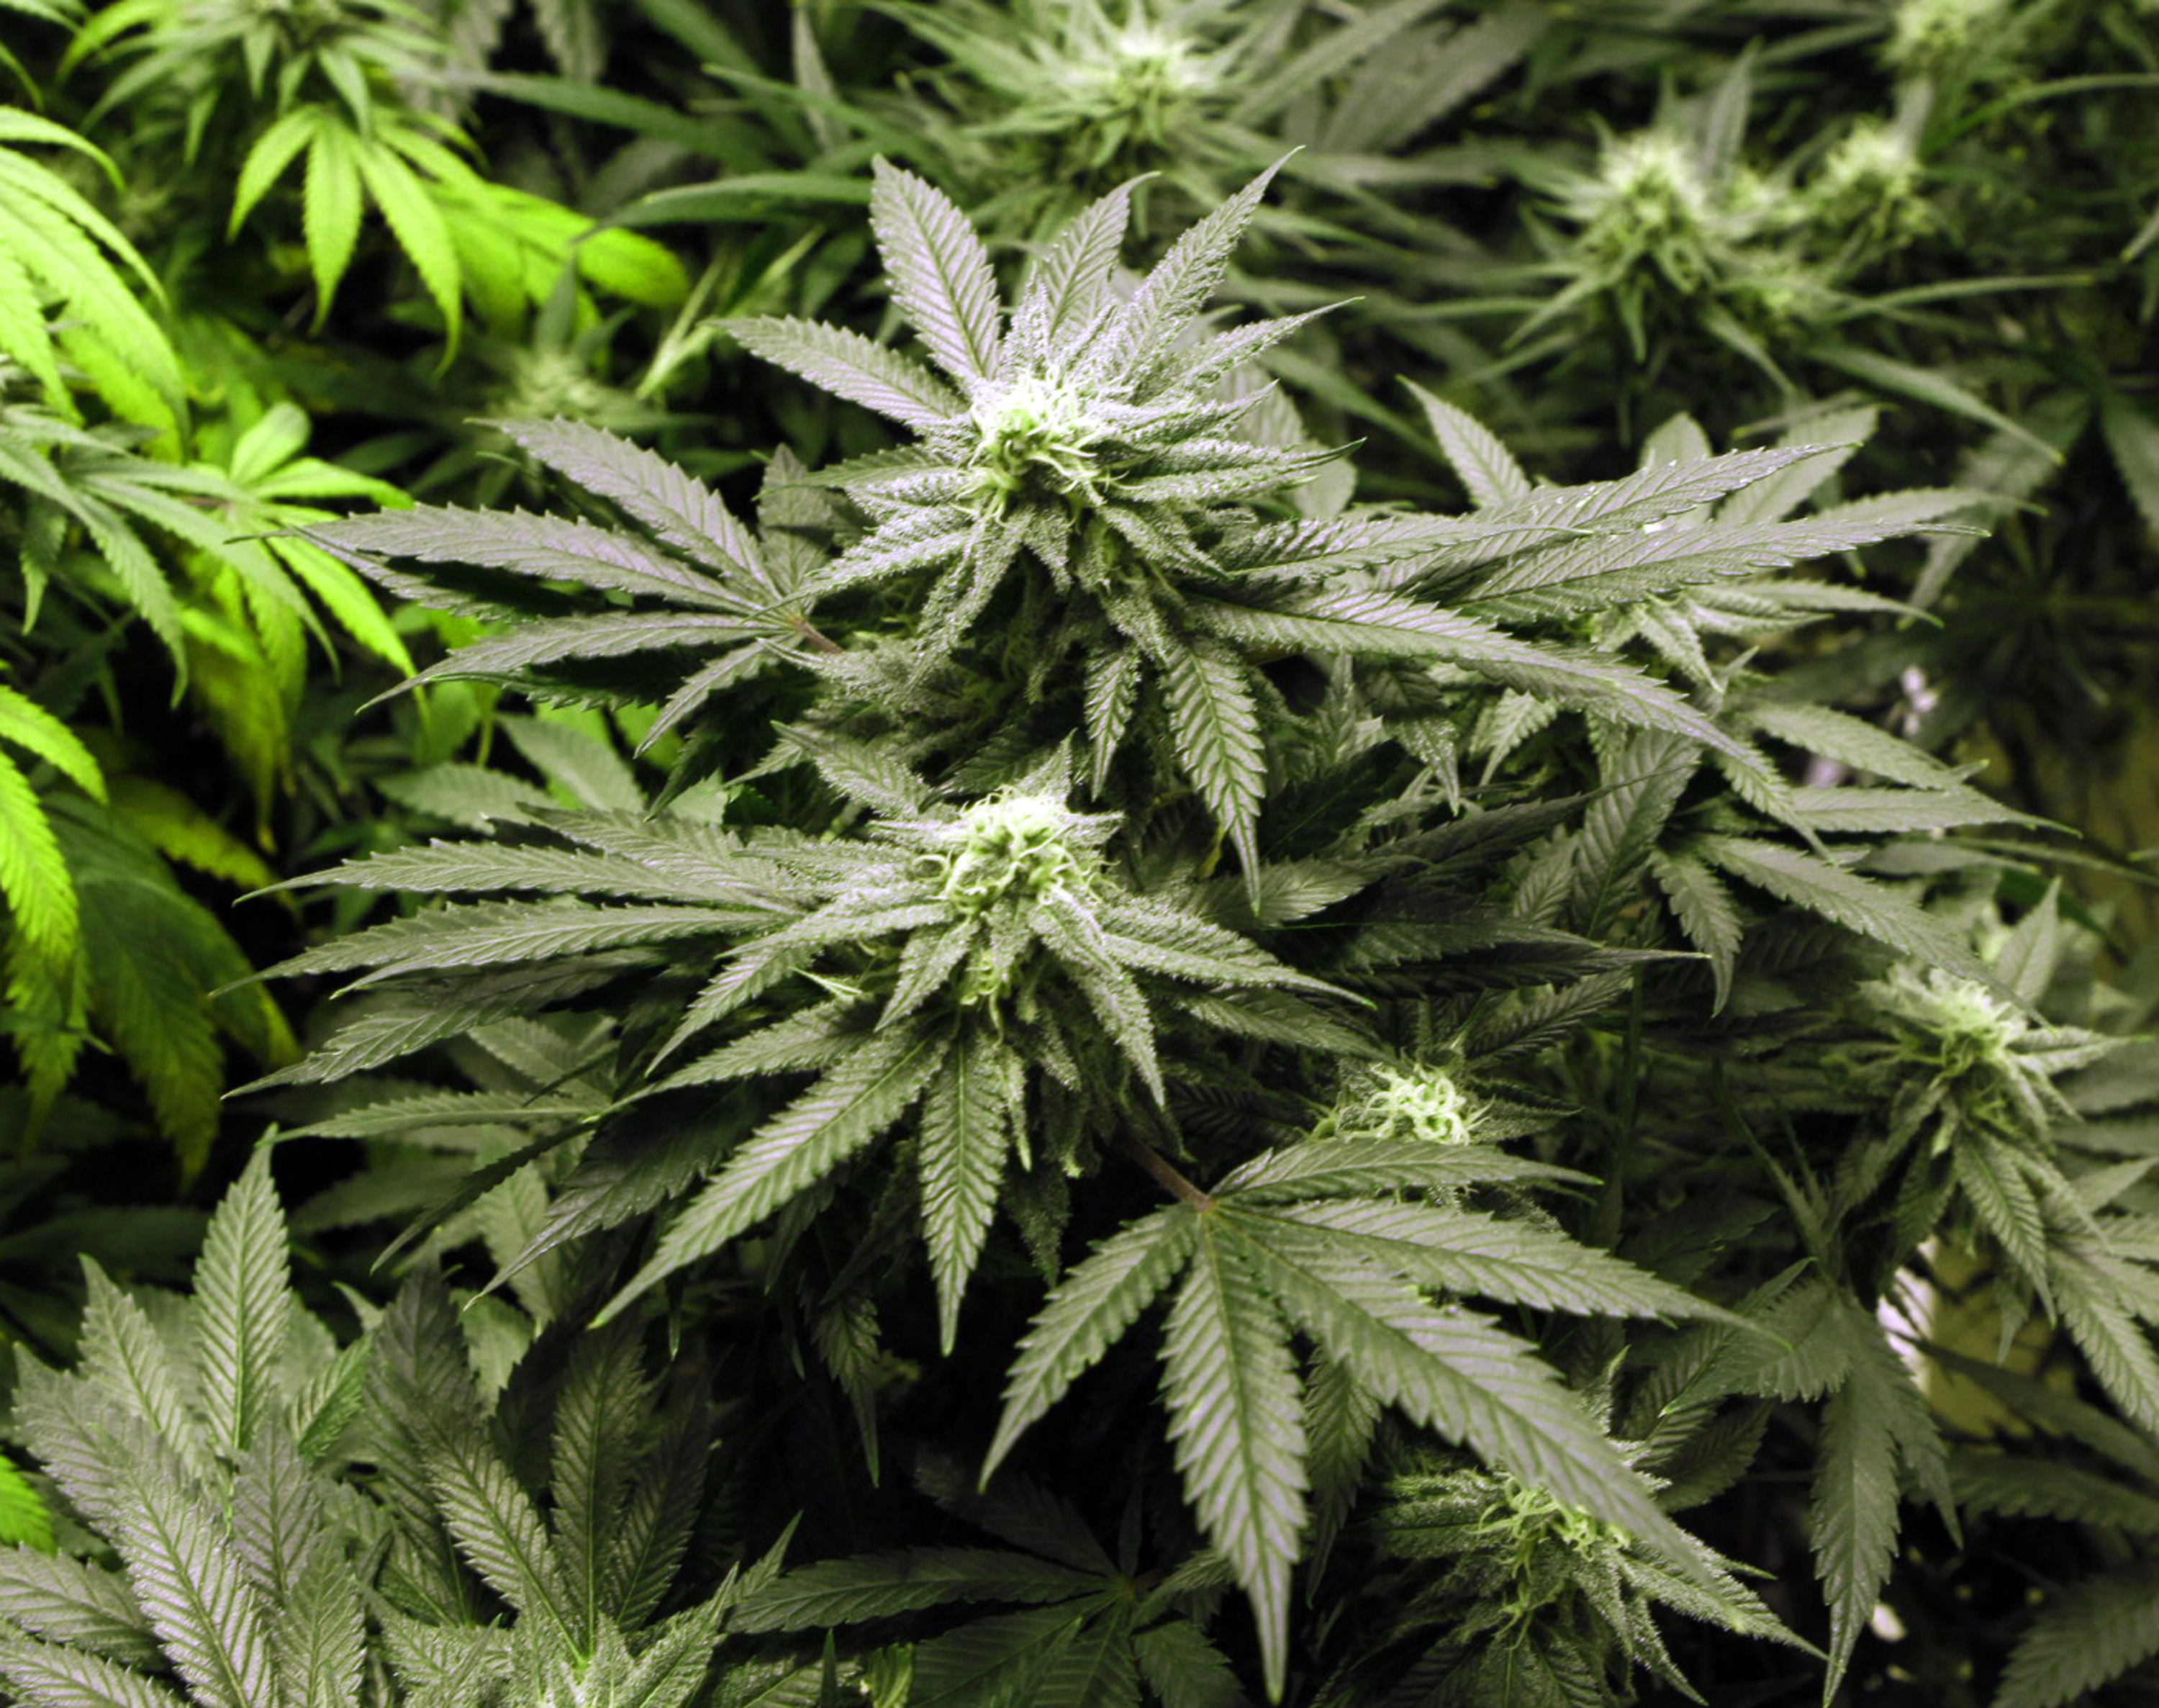 Arkansas judge blocks state from licensing pot growers